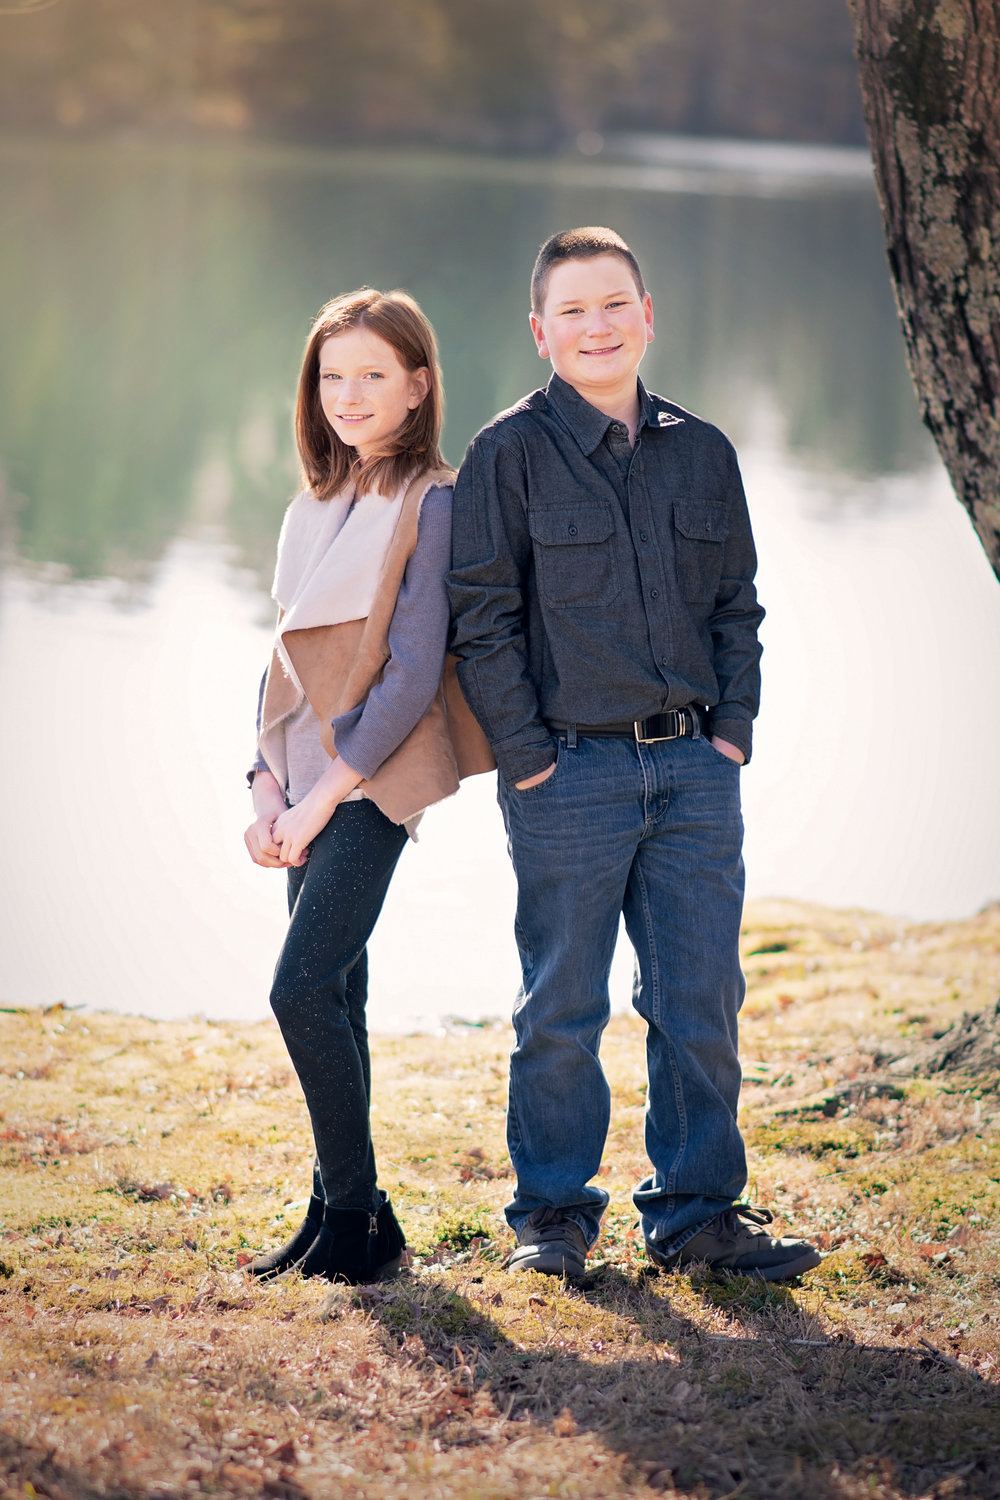 """She did an amazing job with my family photos! Kayla made the entire experience so easy and fun!"" - Tabbetha Thomas"